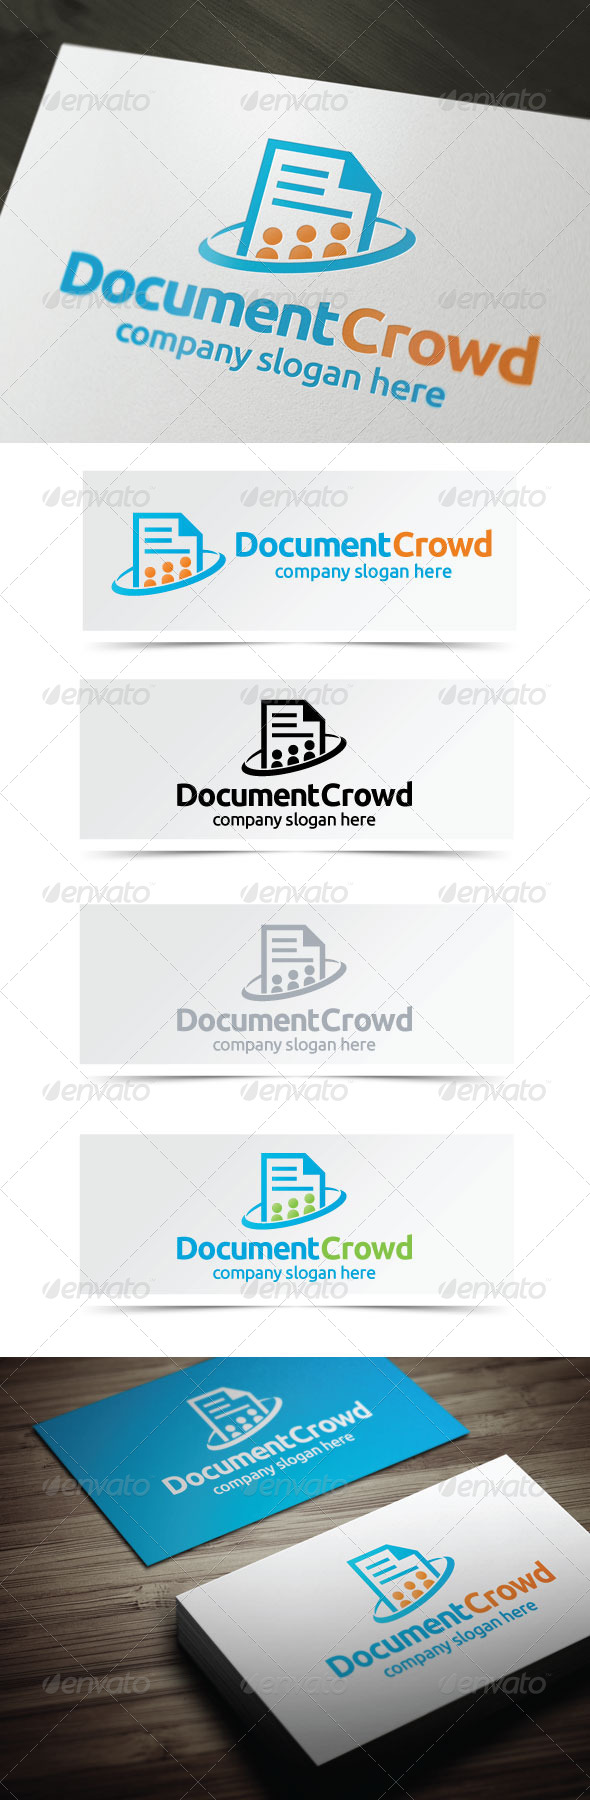 Document Crowd - Objects Logo Templates